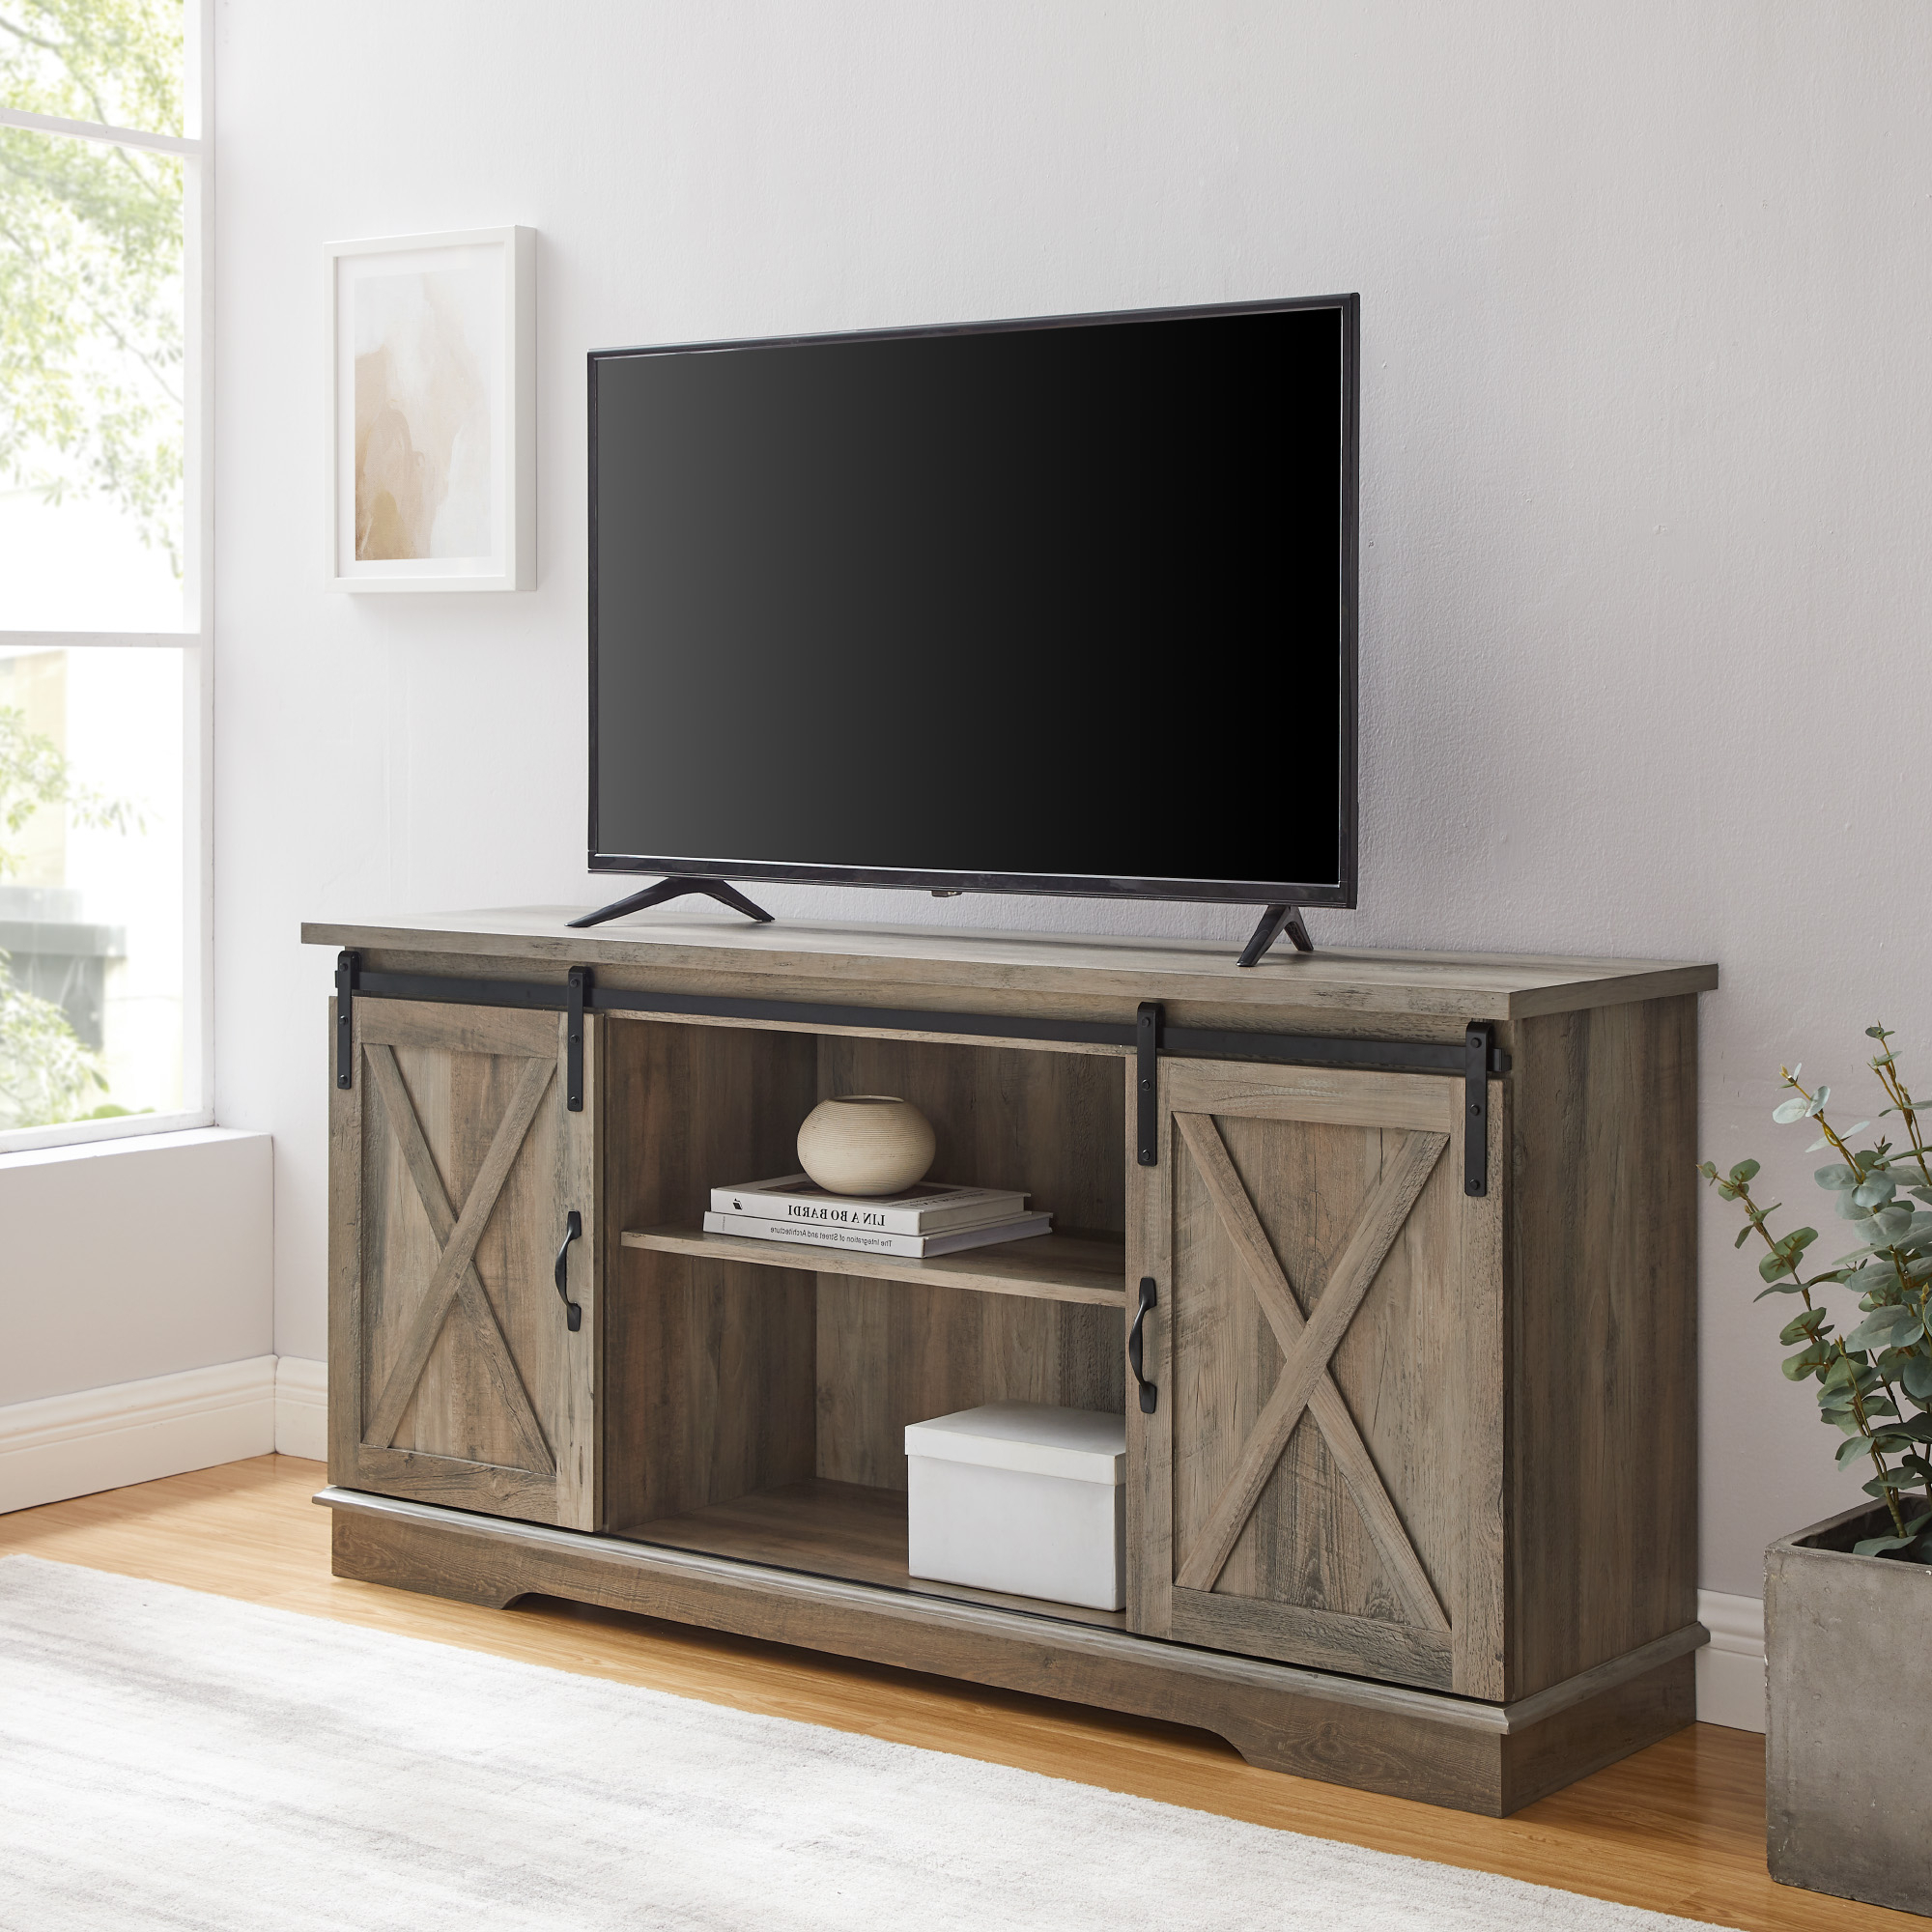 """2018 Woven Paths Farmhouse Sliding Barn Door Tv Stand For Tvs Regarding Stamford Tv Stands For Tvs Up To 65"""" (View 1 of 25)"""